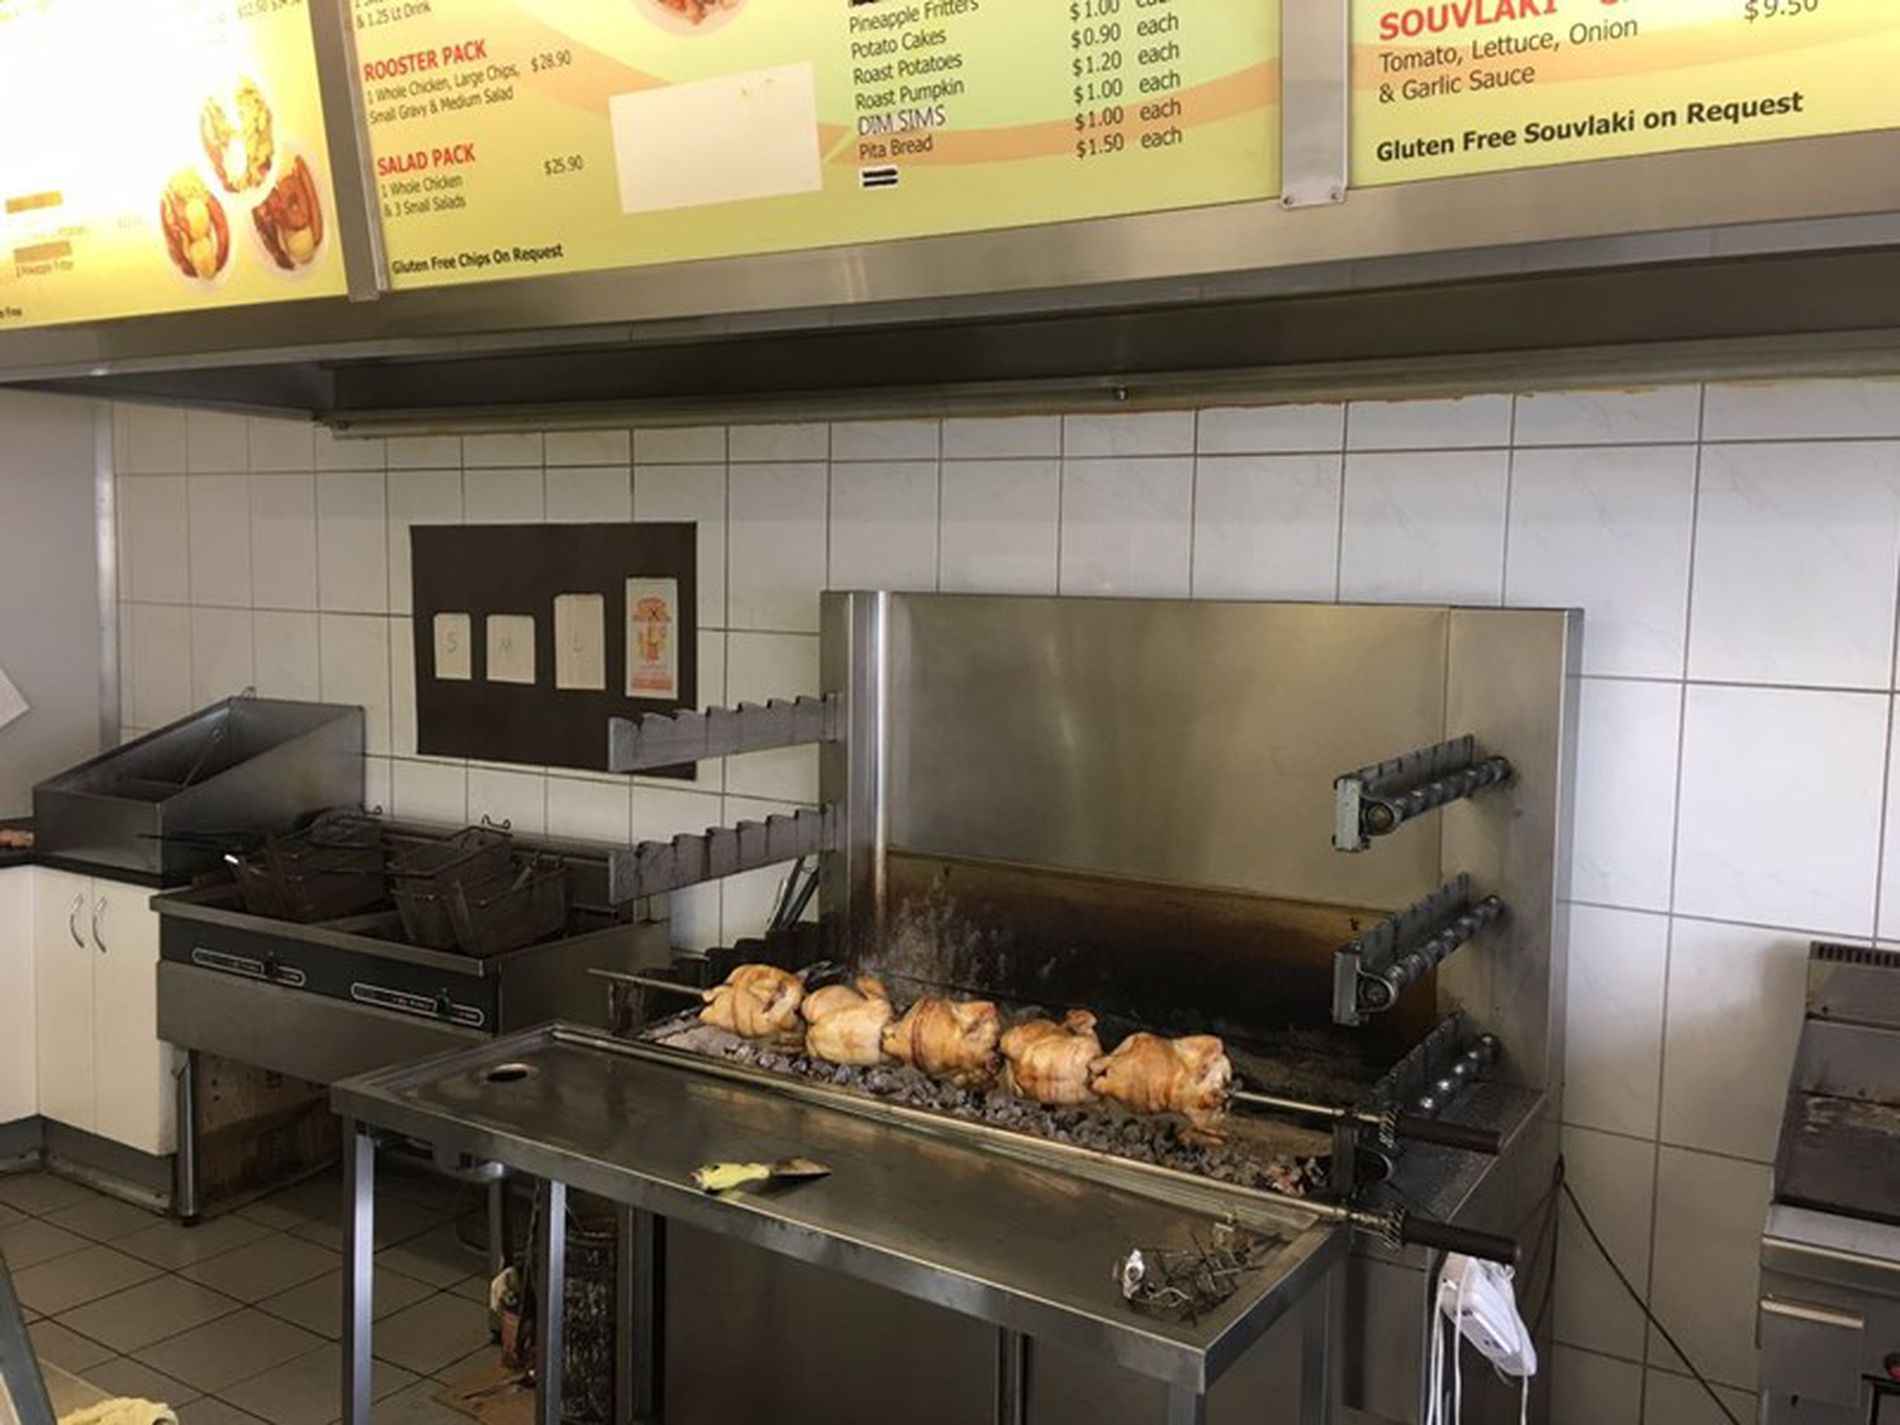 SOLD - Charcoal Chicken Business For Sale in the South East